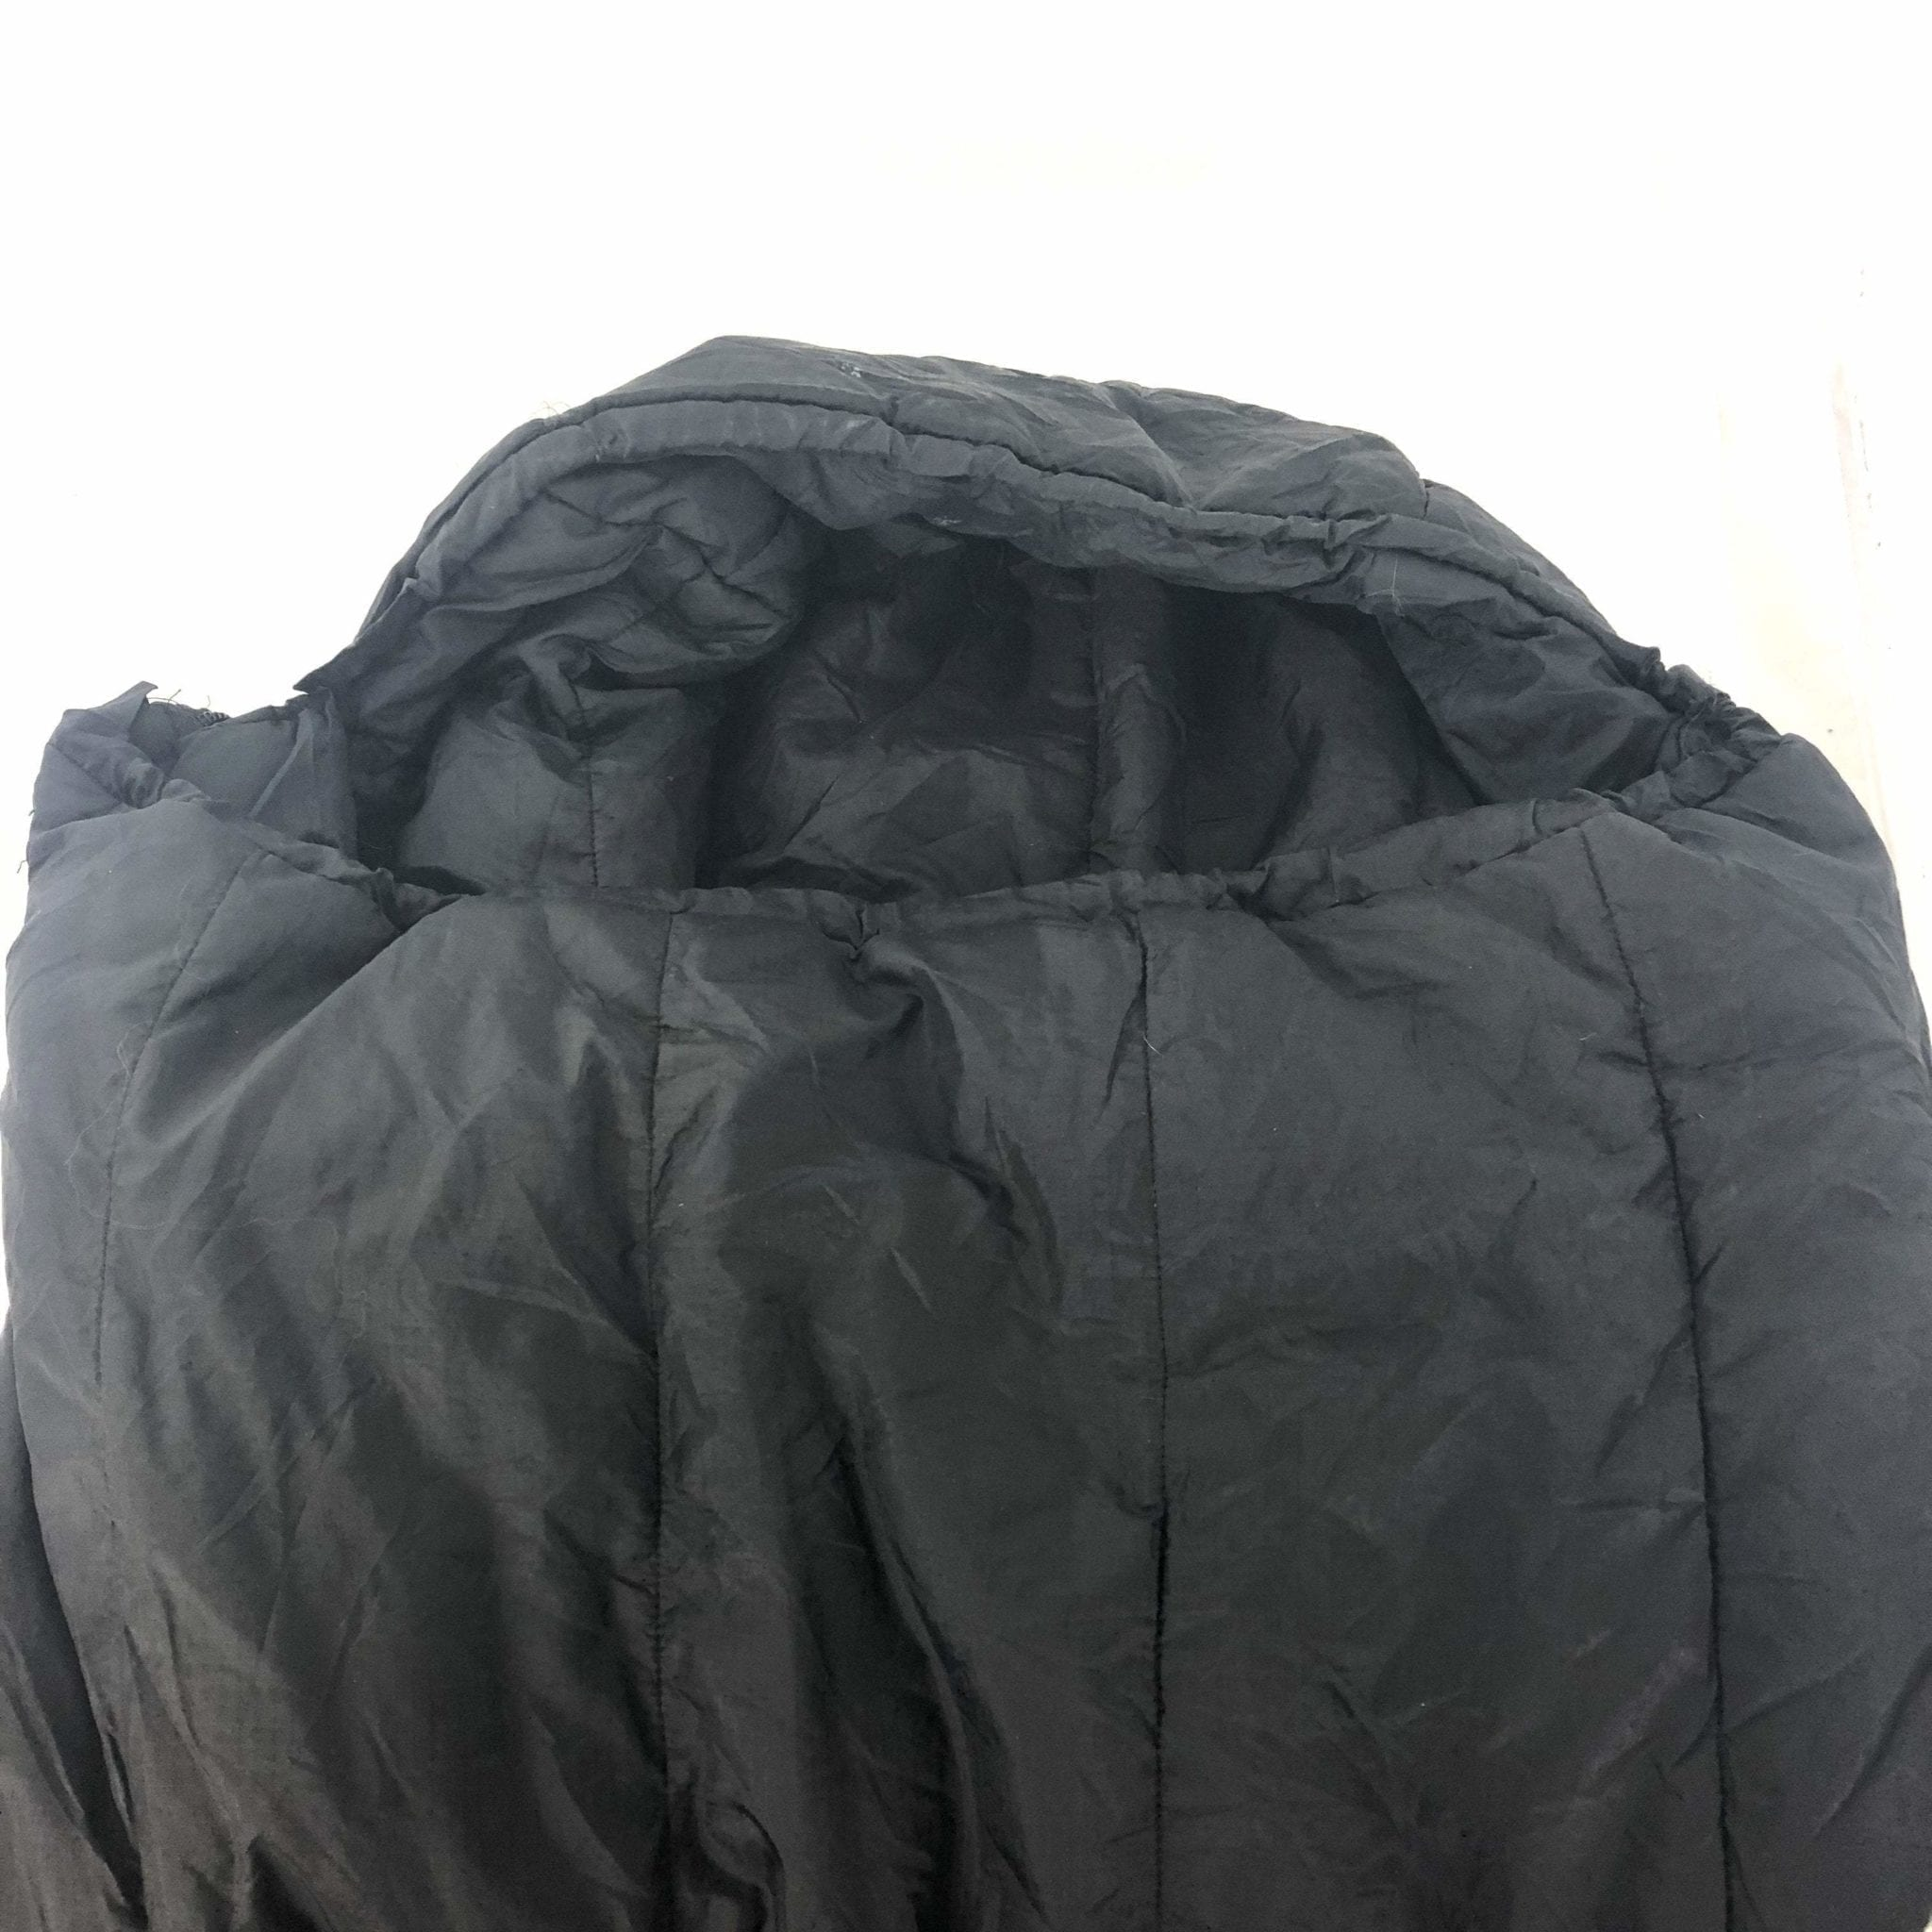 Pre-Owned Military Issue Black Intermediate Sleeping Bag for BDU MSS